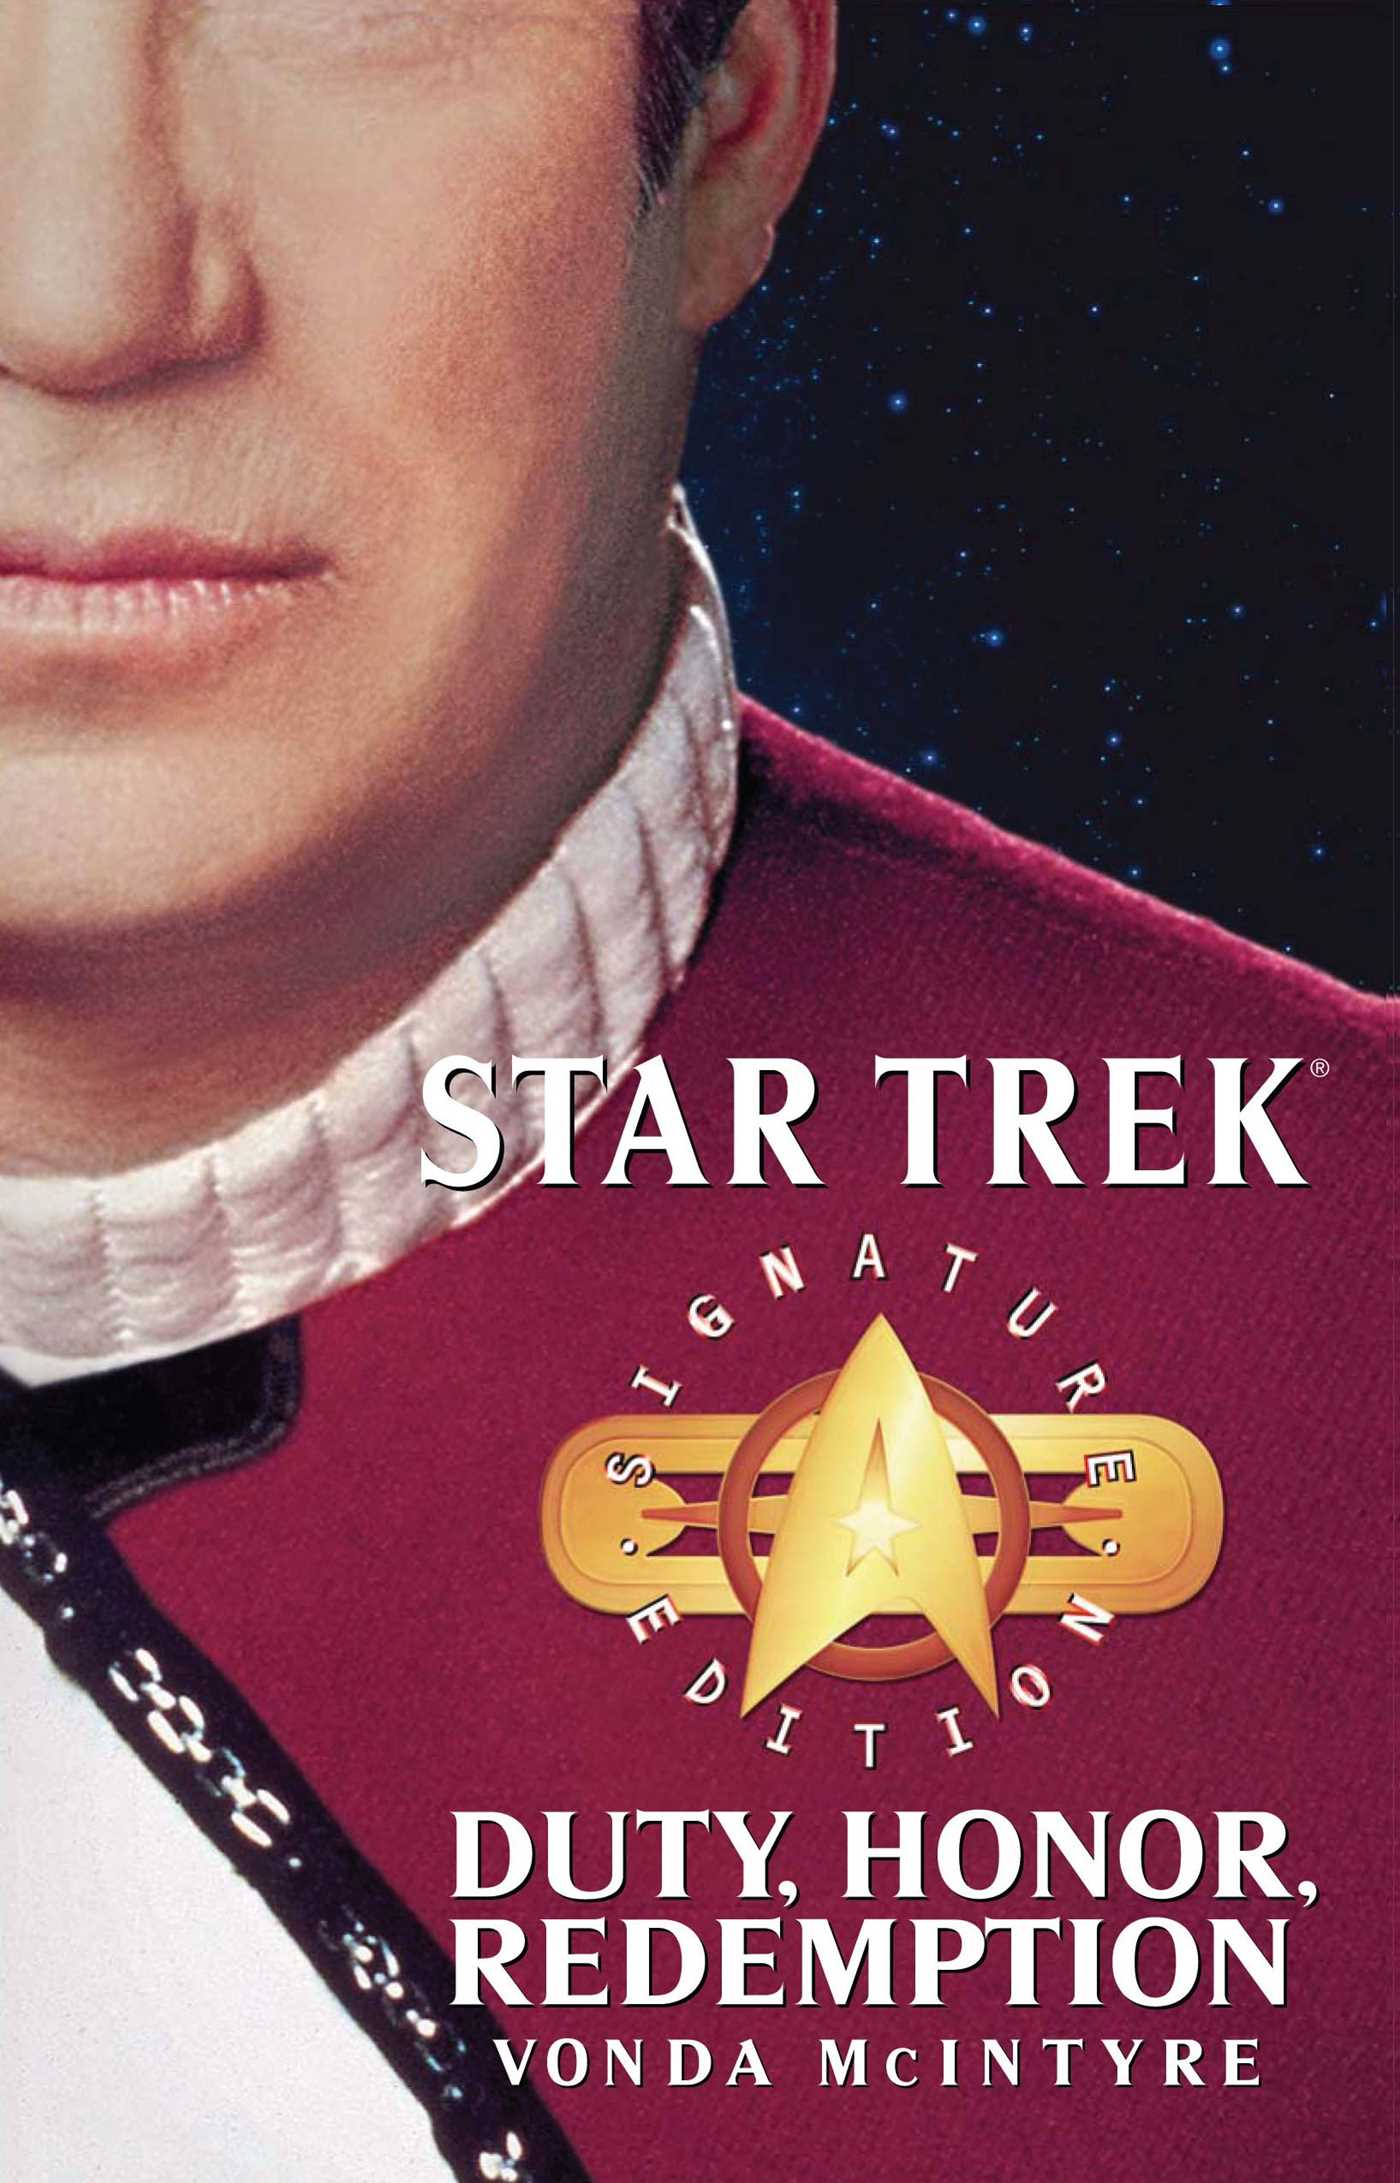 Star-trek-signature-edition-duty-honor-redemption-9780743496605_hr